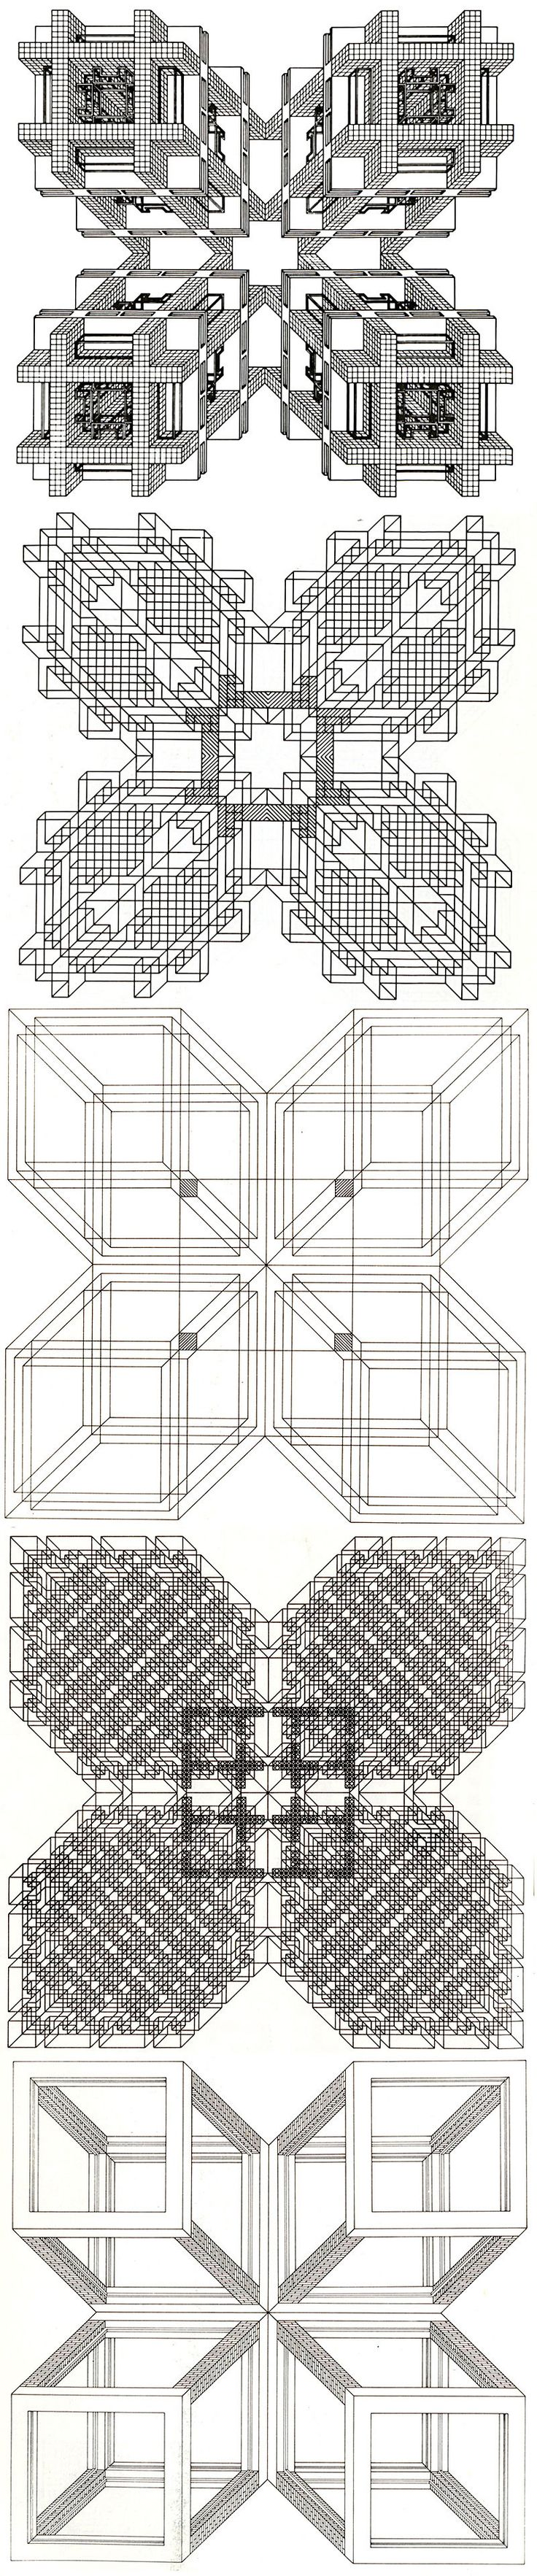 S.Tigerman and G.L. Crabtree: The Formal Generators of Structure, 1975 – SOCKS